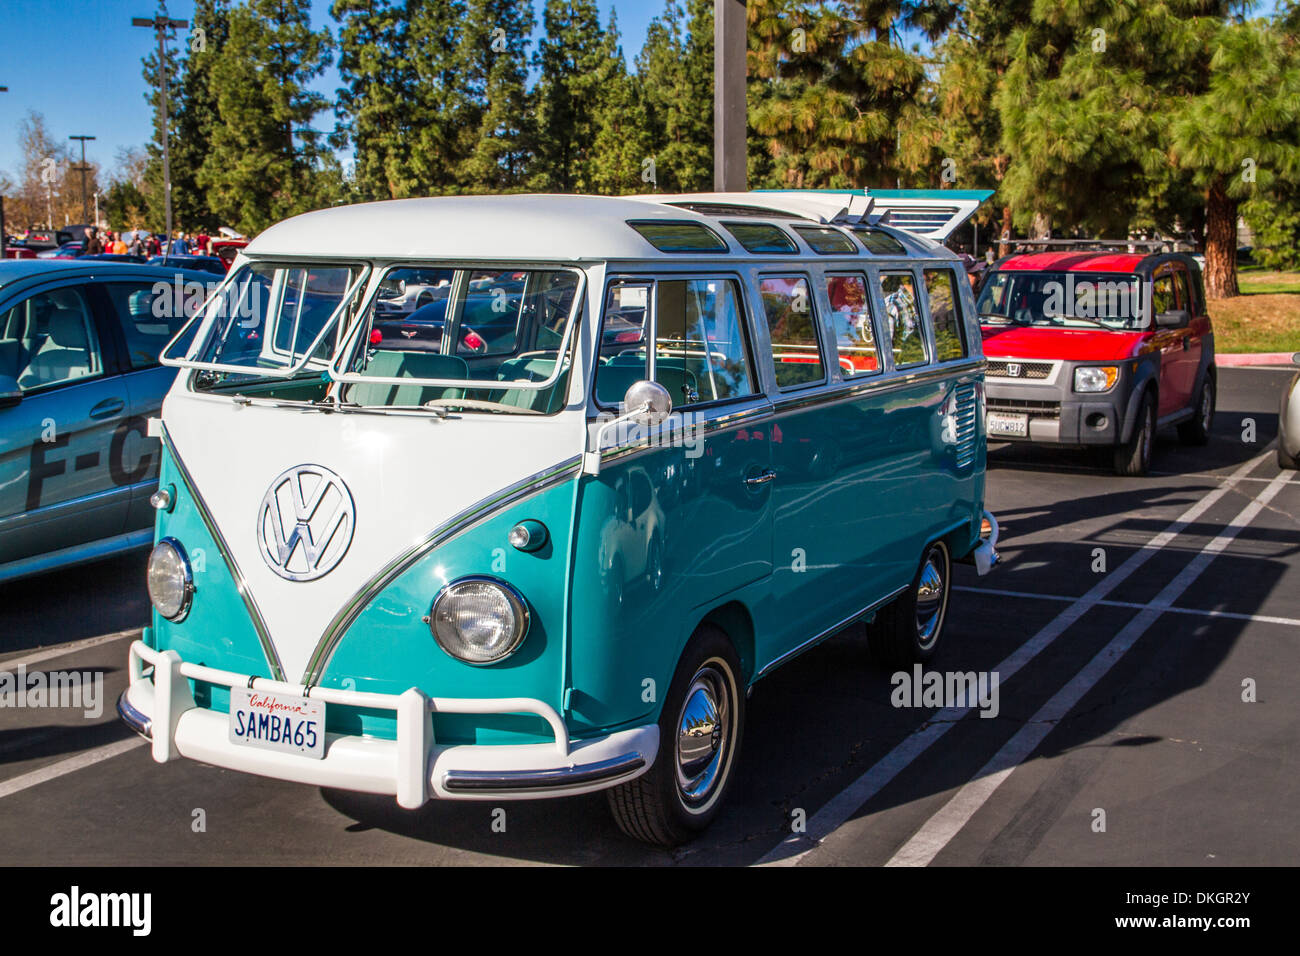 A Restored 1960s Volkswagen Bus At The Motor4toys Event In Woodland Hills California